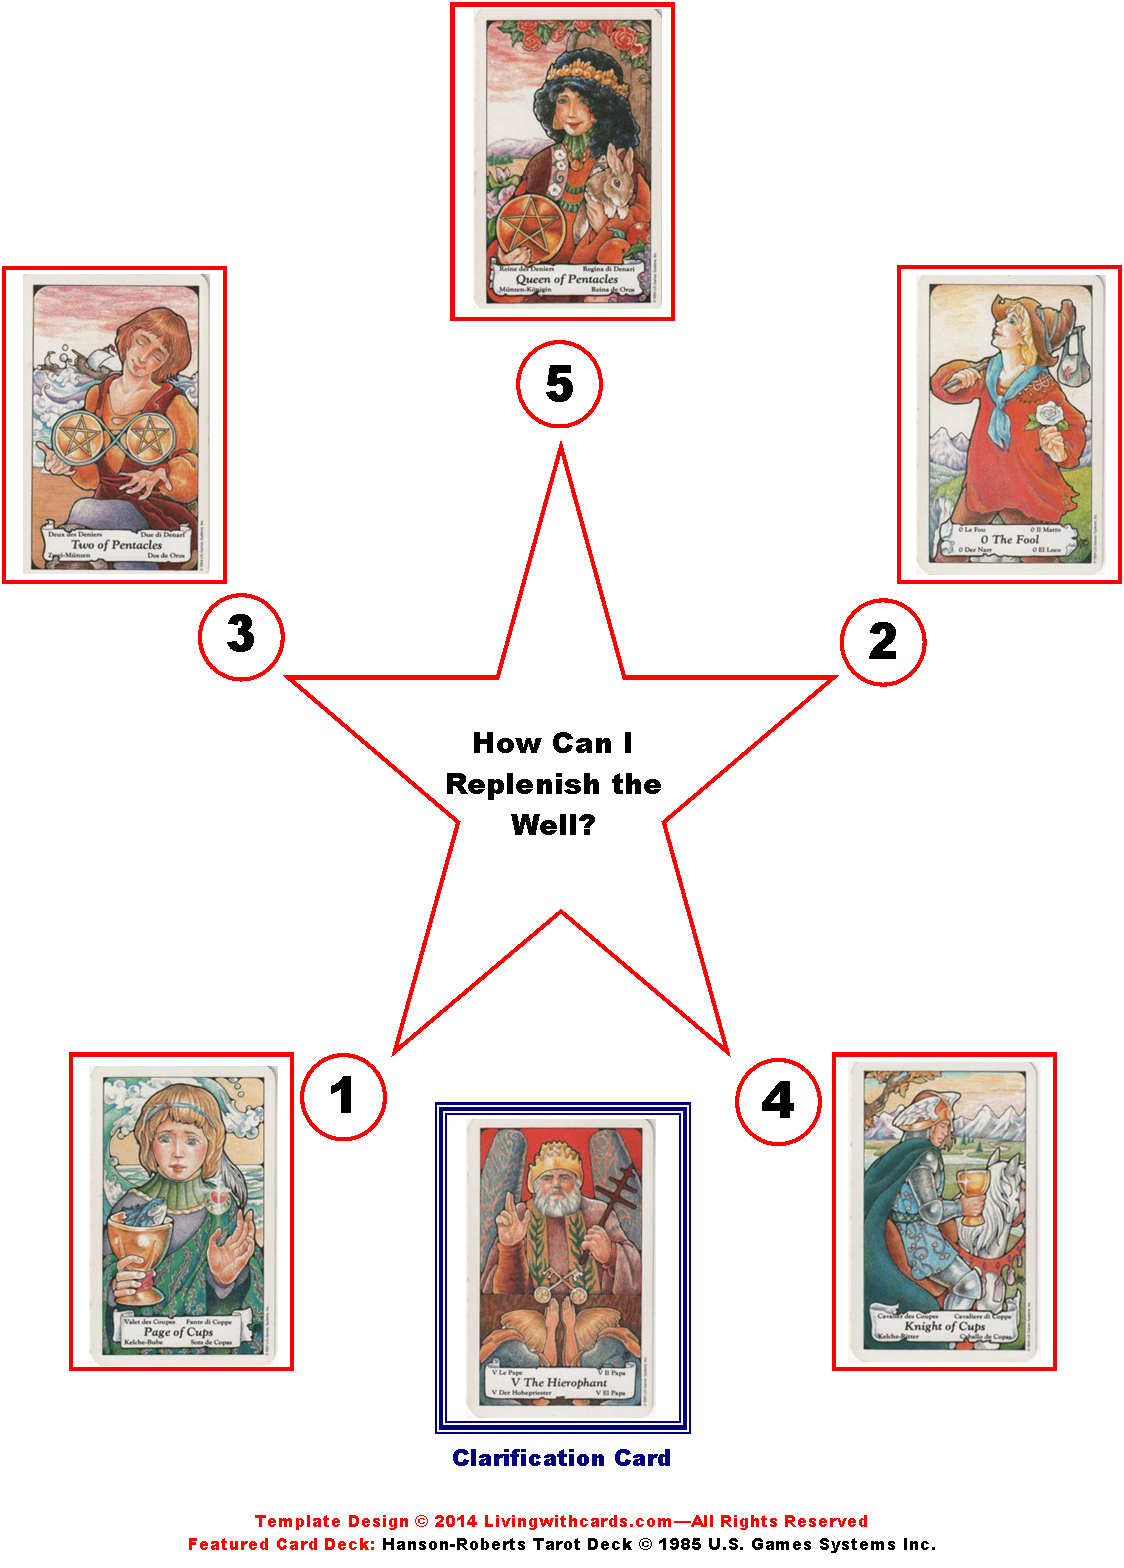 5 Pointed Star Tarot Spread - Replenish the Well